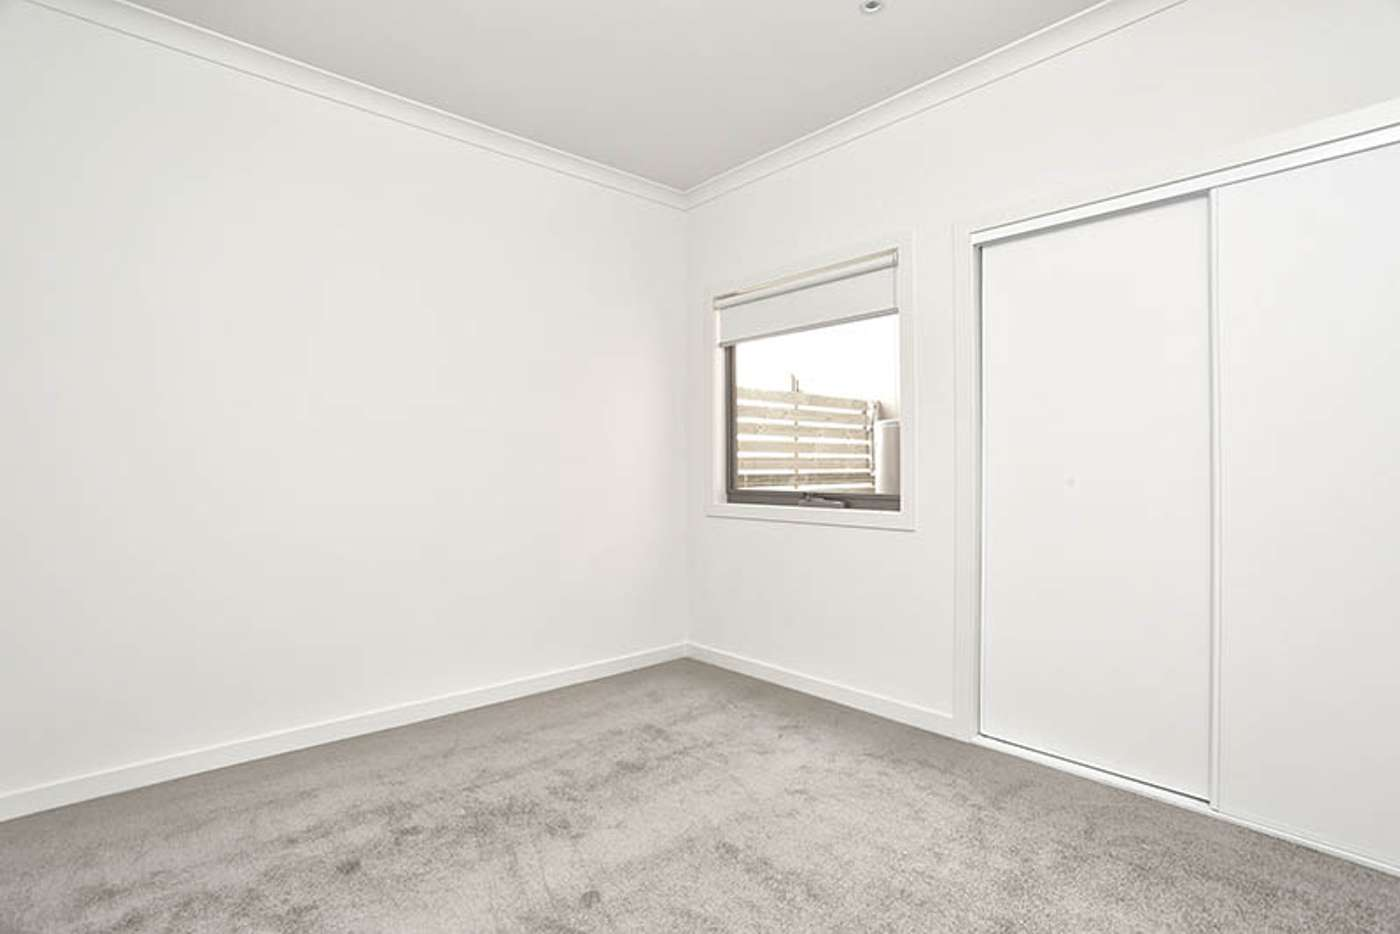 Sixth view of Homely townhouse listing, 6/1-15 Beddison Road, Craigieburn VIC 3064